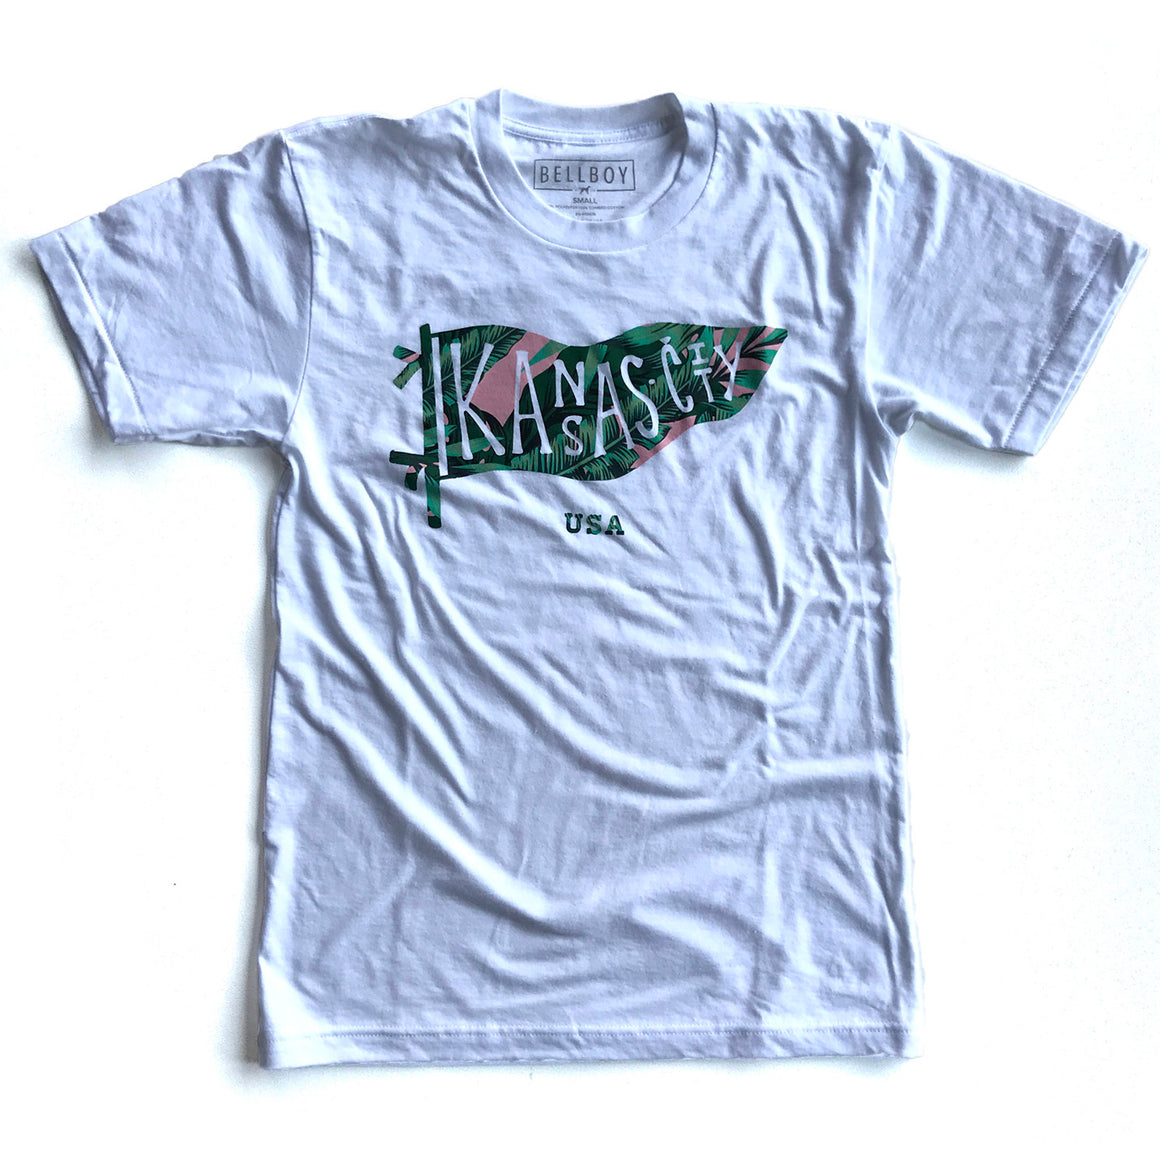 BELLBOY | KC PENNANT T-SHIRT - WHITE/PALM TREE